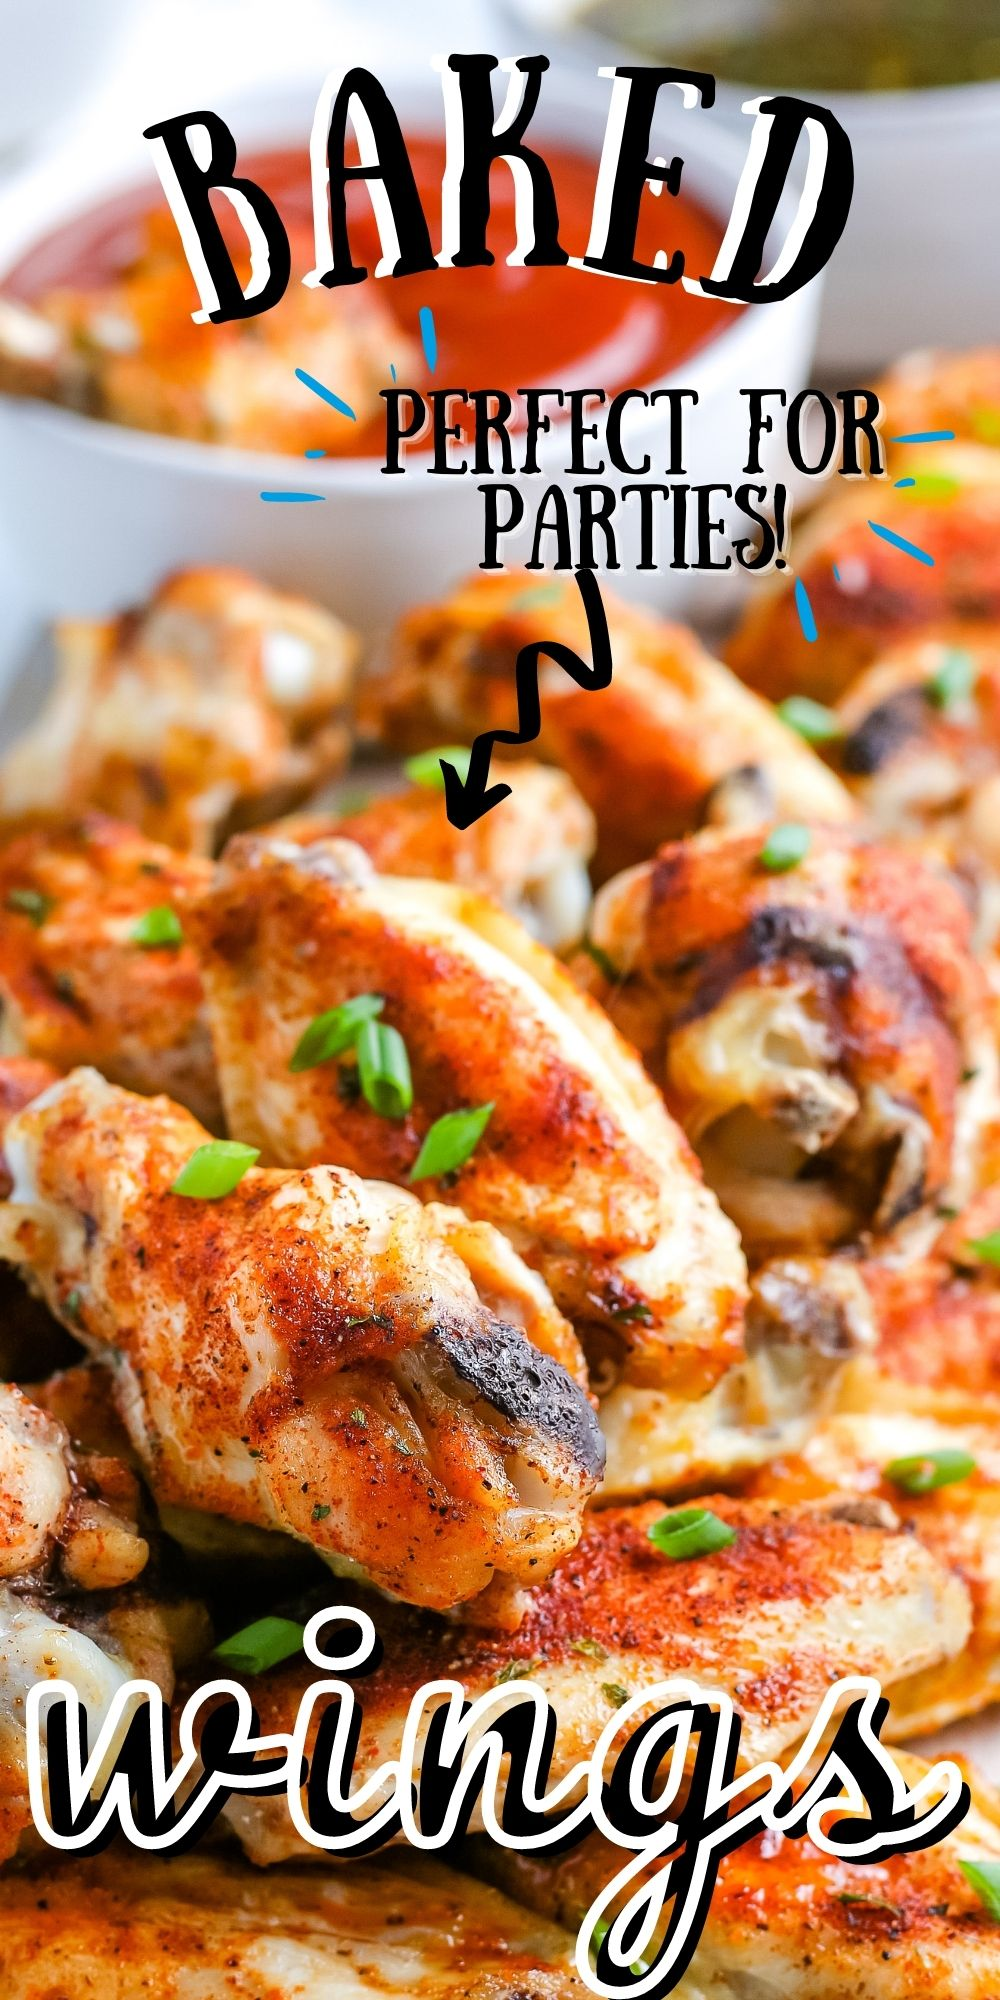 Our oven Baked Chicken Wings recipe takes about 30 minutes to make and is perfect for parties and the Big Game. We also include recipes for three different dipping sauces: Honey BBQ, Spicy Asian, and Sweet and Tangy. via @easybudgetrecipes